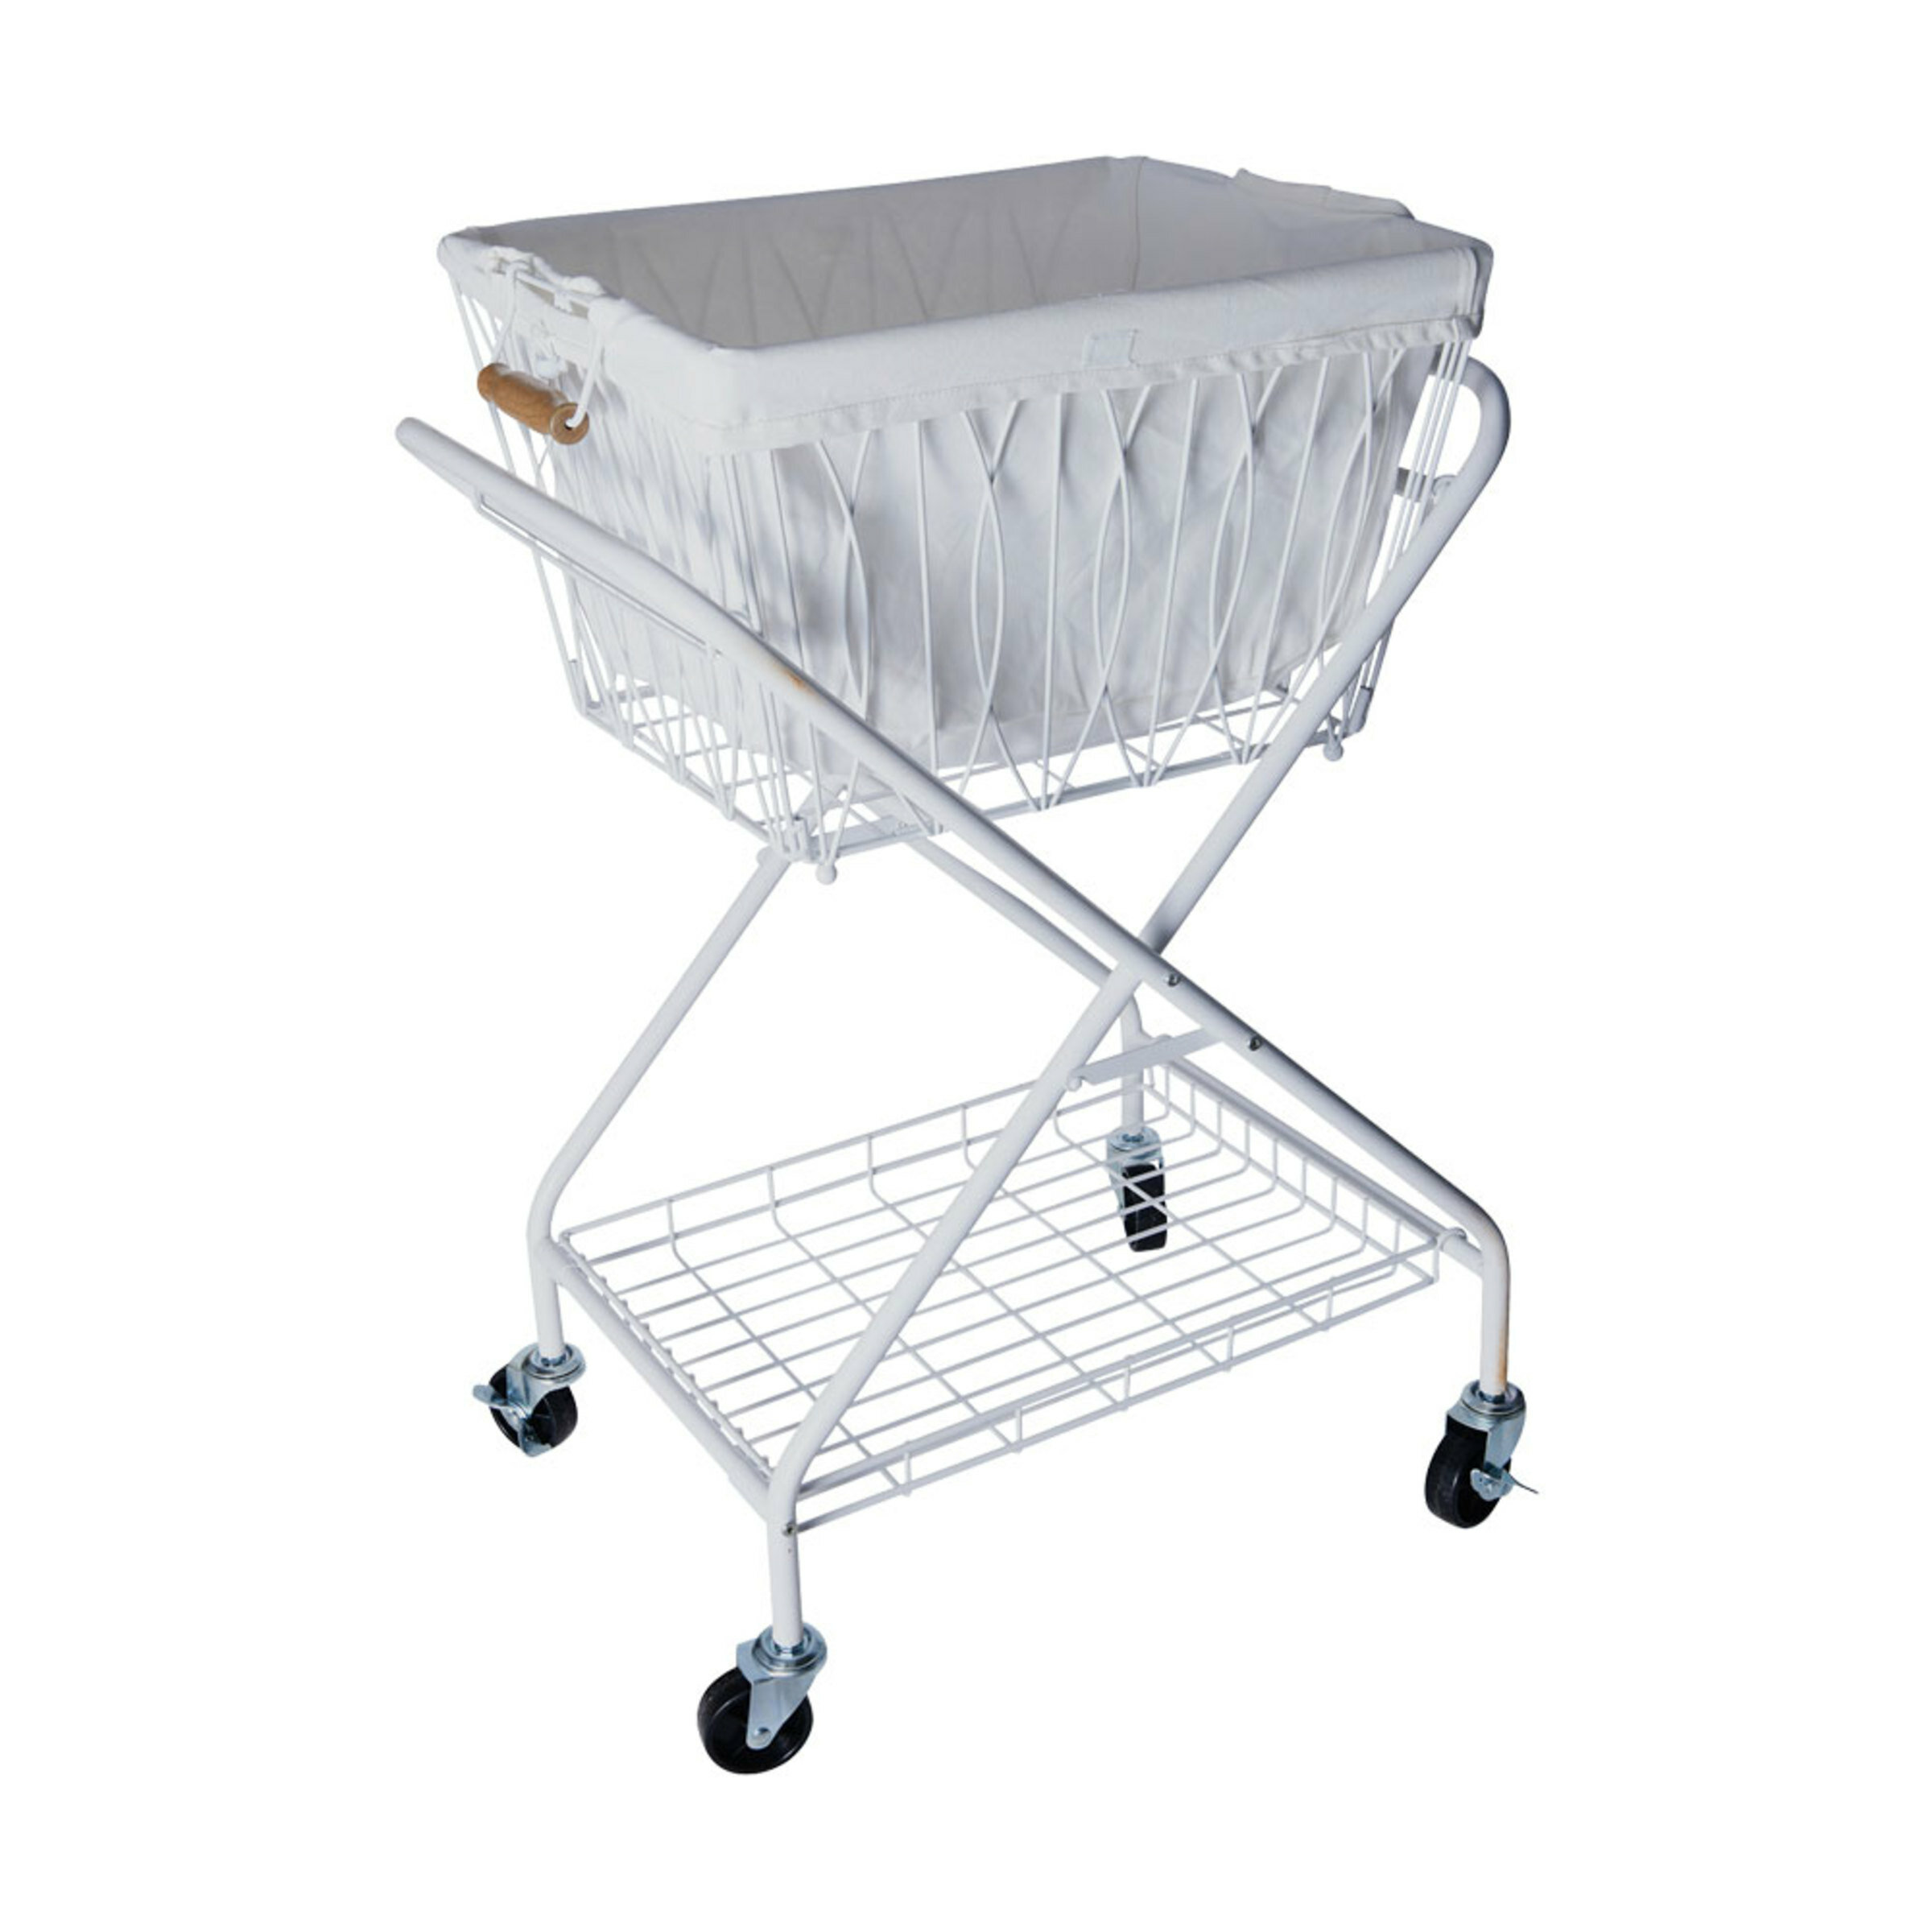 9db8c22be63 Artesa Verona Collapsible Laundry Cart Removable Basket   Canvas Bag ...